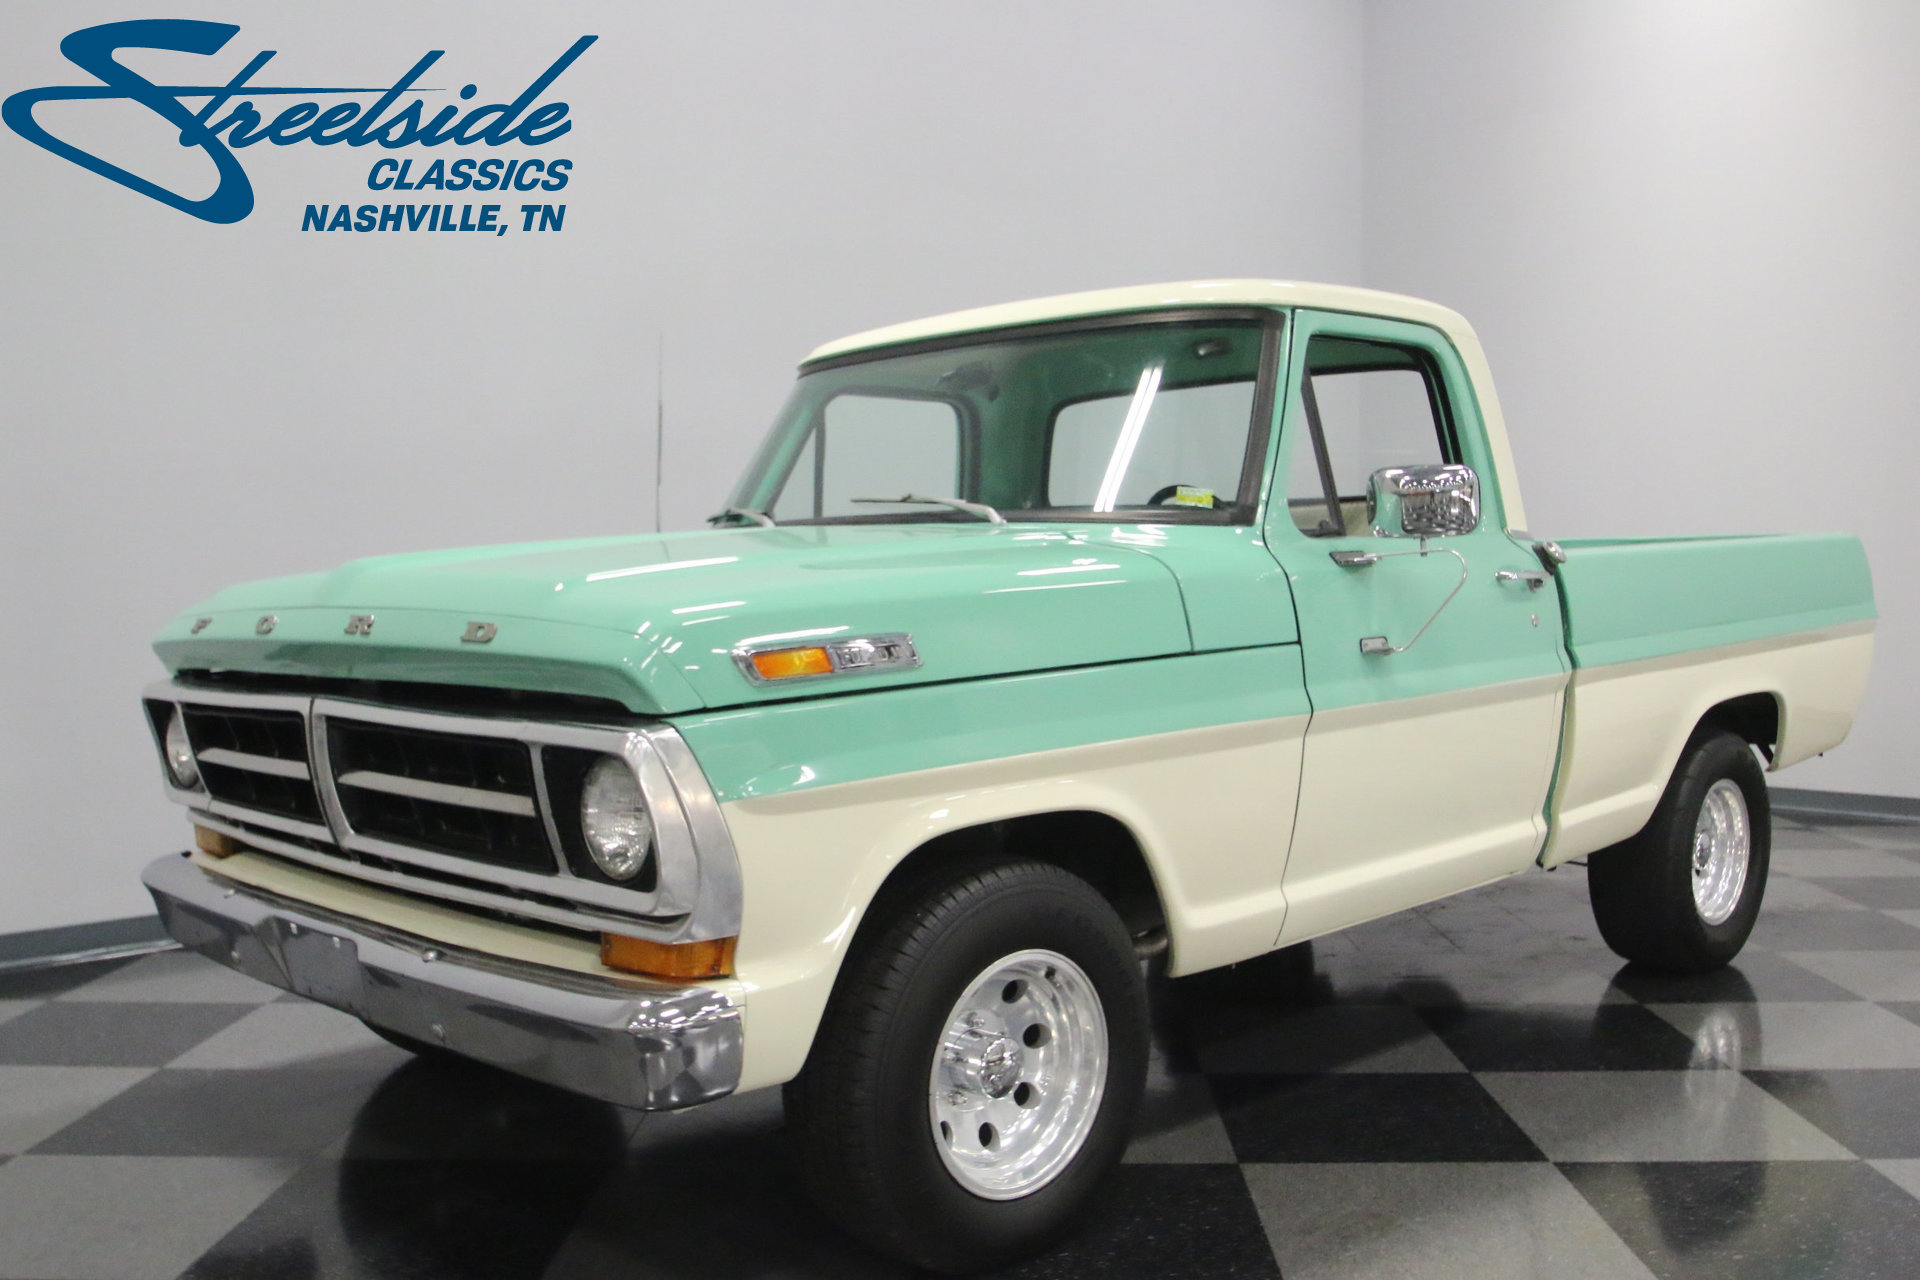 1970 Ford F 100 Streetside Classics The Nations Trusted Classic 1955 F100 Headliner View 360